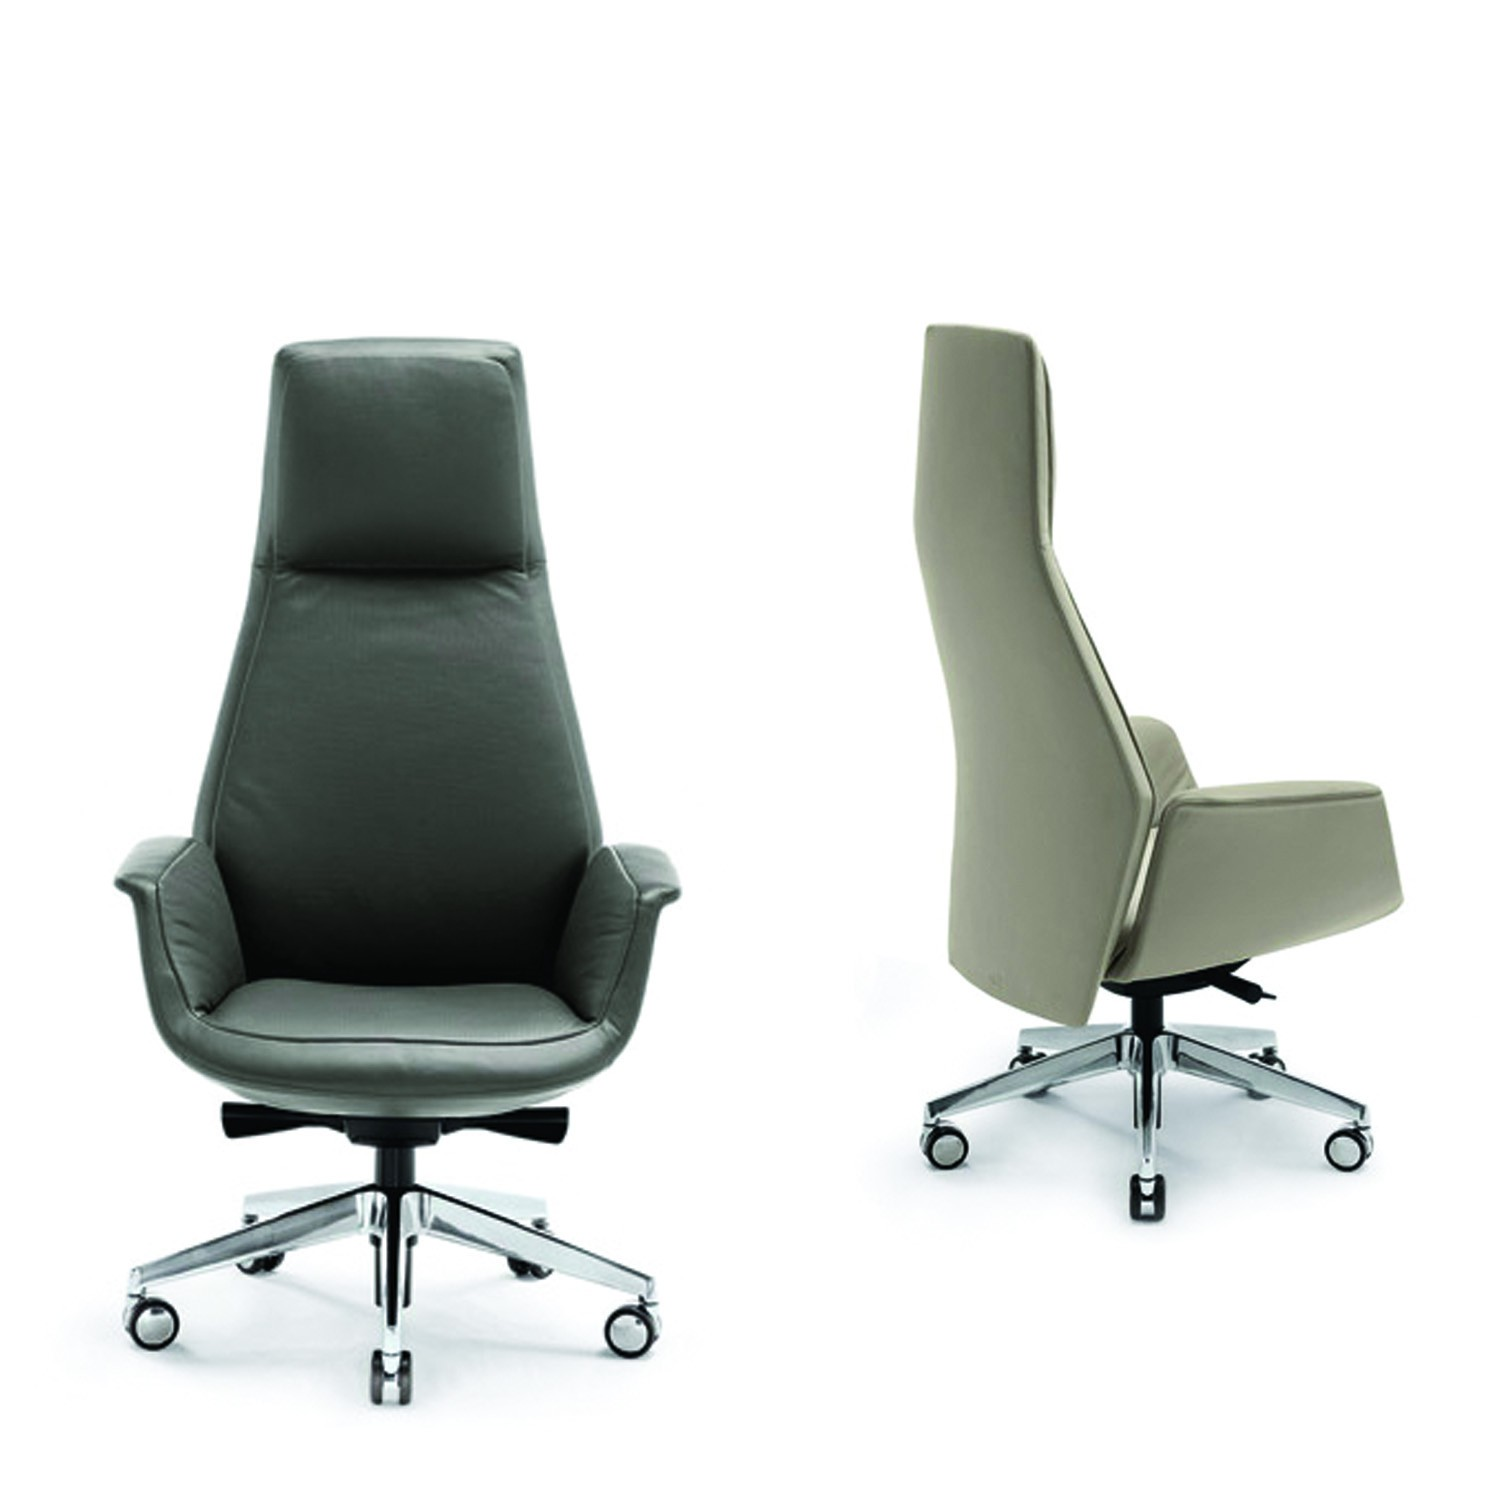 the silver chair movie 2015 high for dogs with megaesophagus our top 5 executive office chairs apres furniture